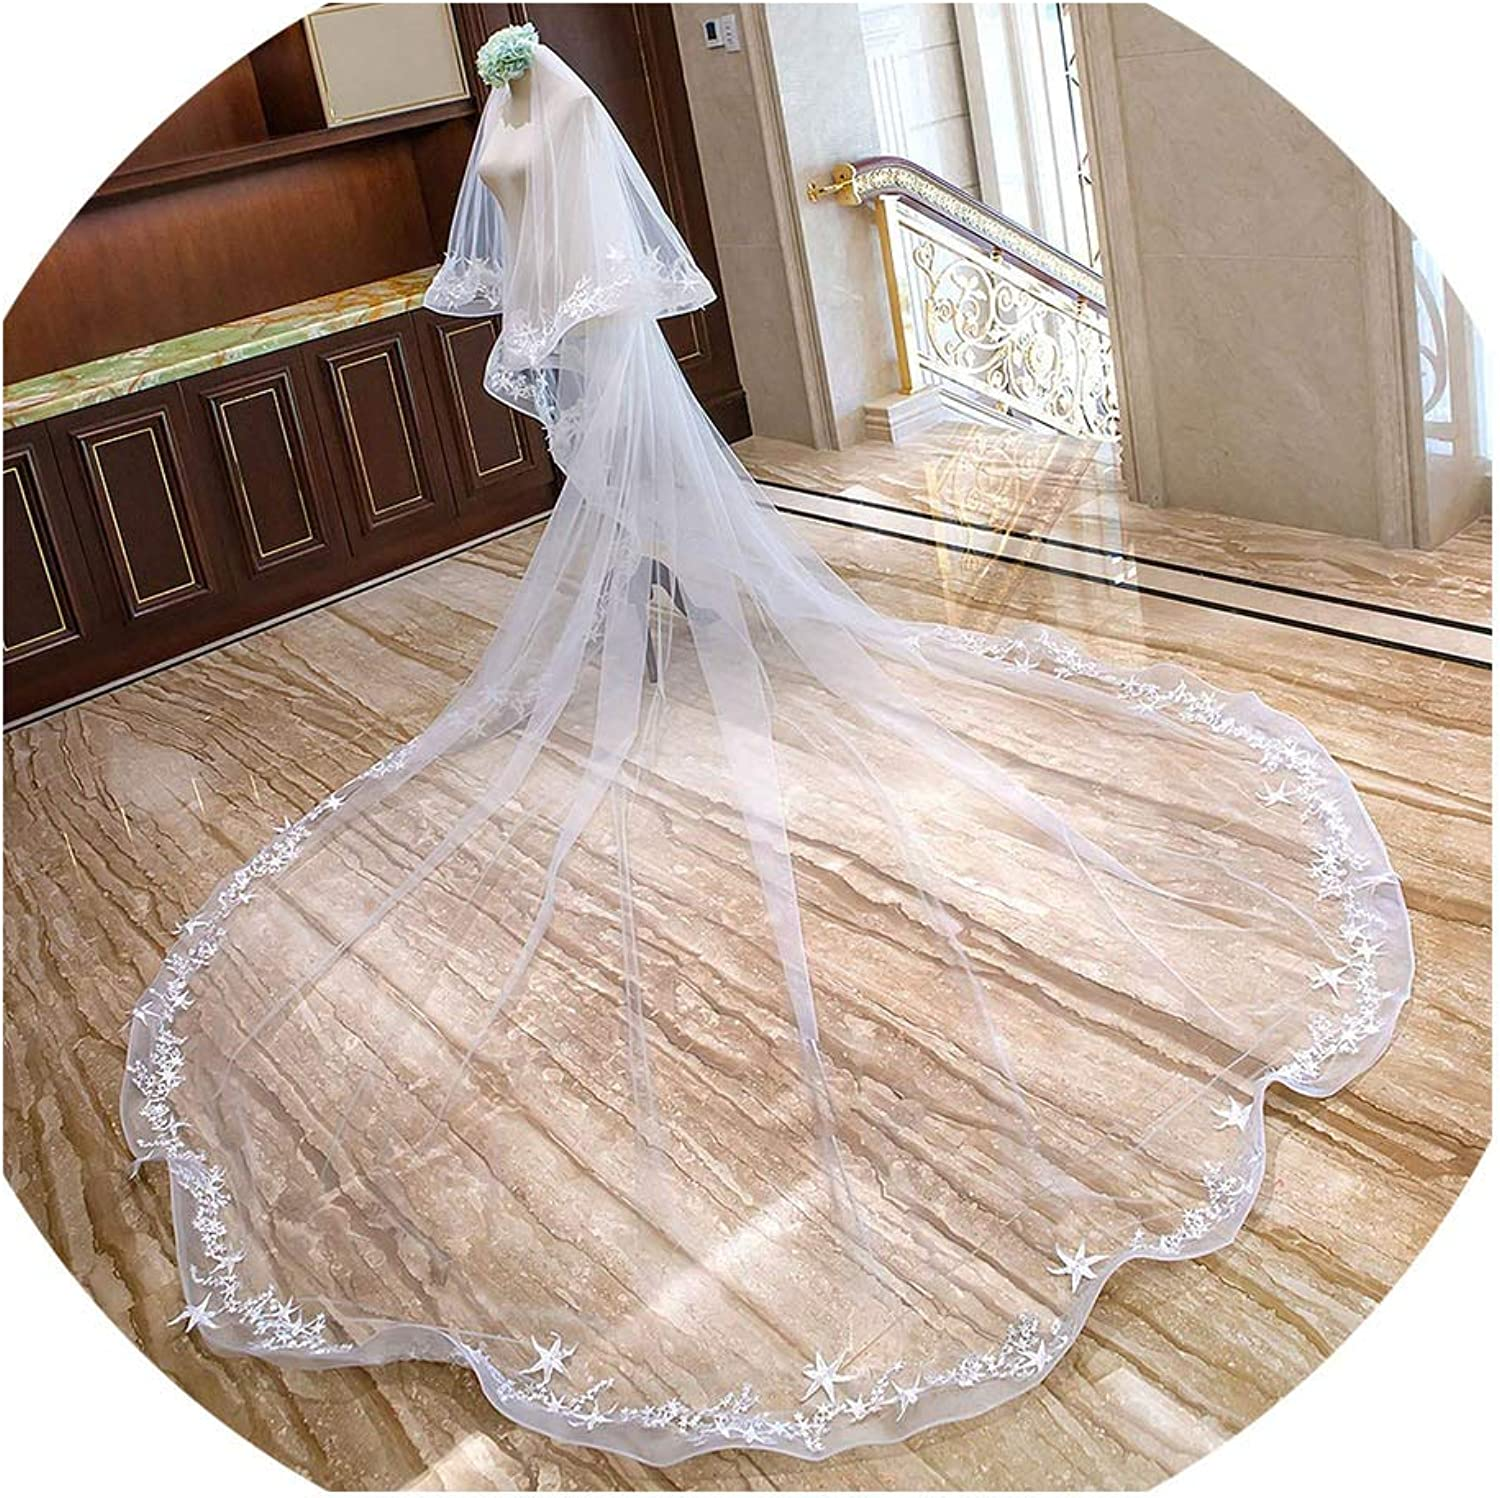 2 Layers Lace Appliques ar White ivory Bridal Veil Width 4M Long Cathedral Long Veil For Women Wedding Hair Veil,Ivory